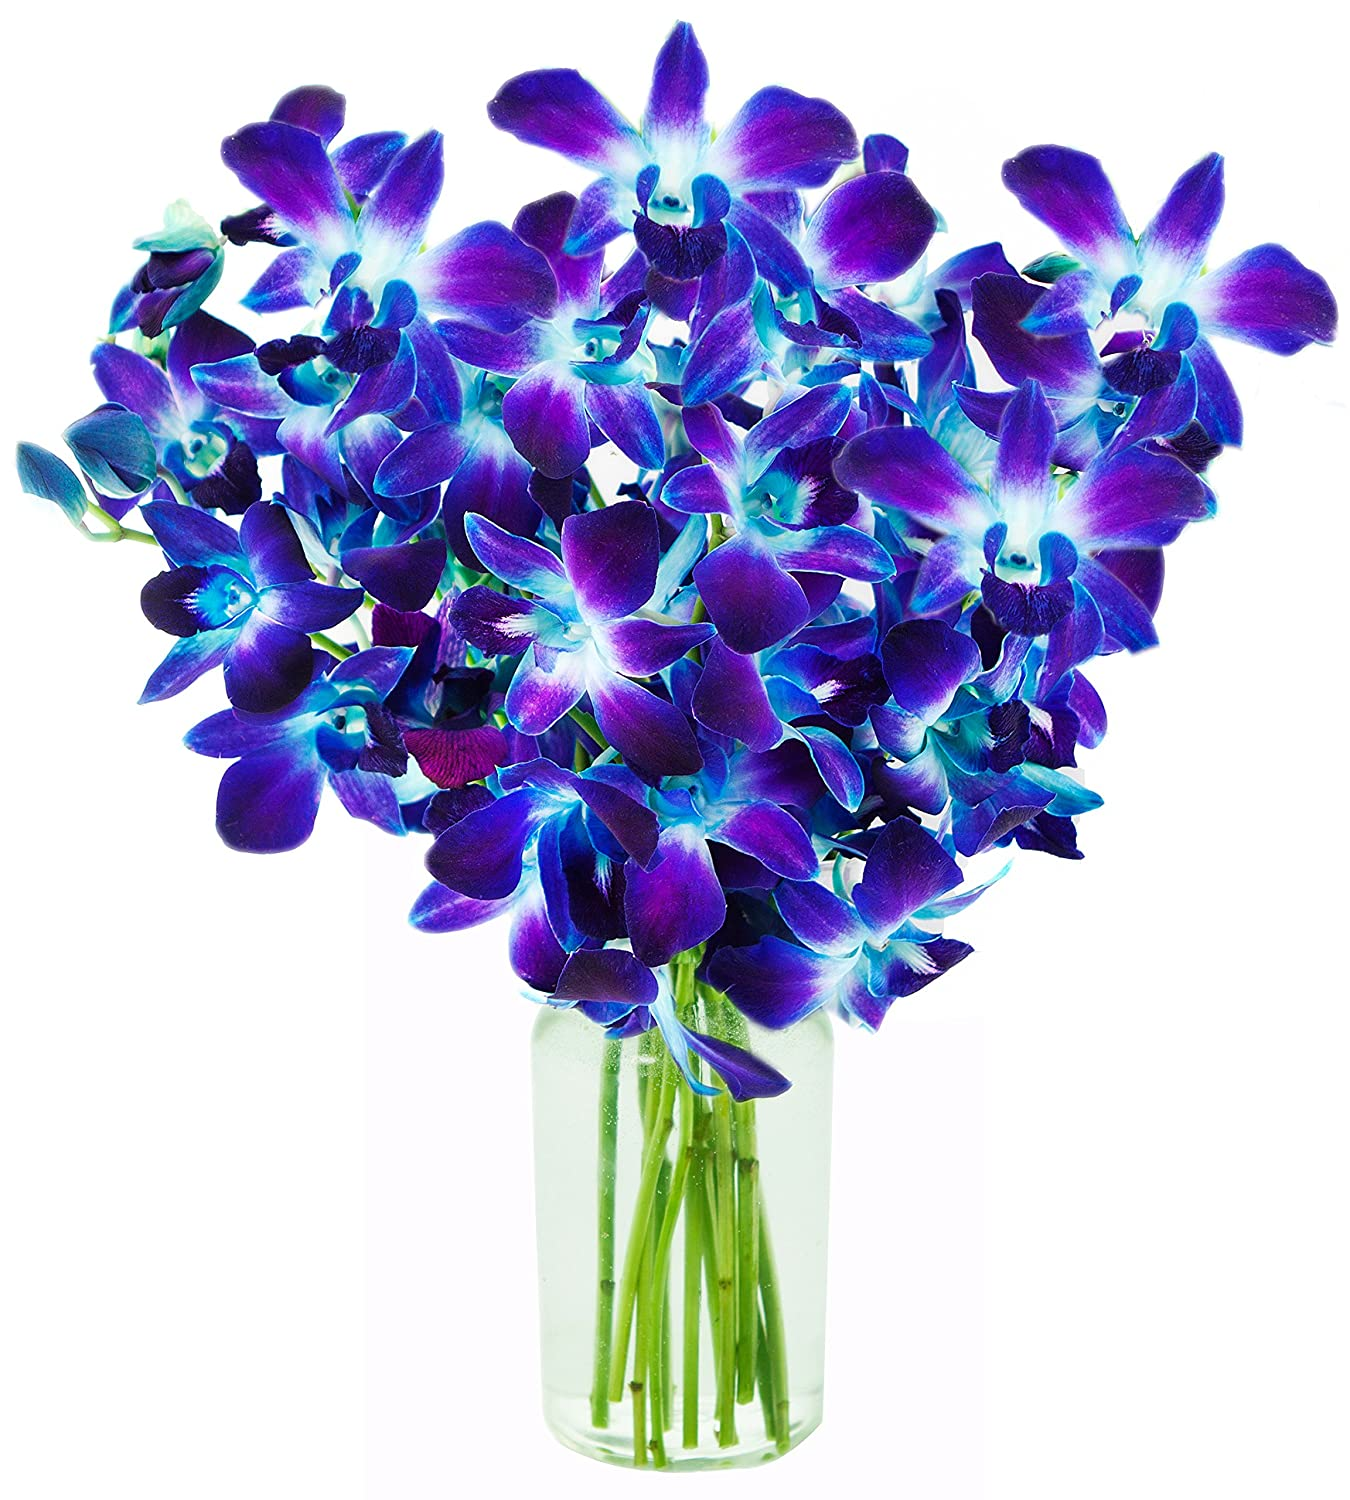 Amazon mothers day special kabloom exotic blue sapphire amazon mothers day special kabloom exotic blue sapphire orchid bouquet of 10 fresh blue dendrobium orchids from thailand with vase grocery izmirmasajfo Choice Image